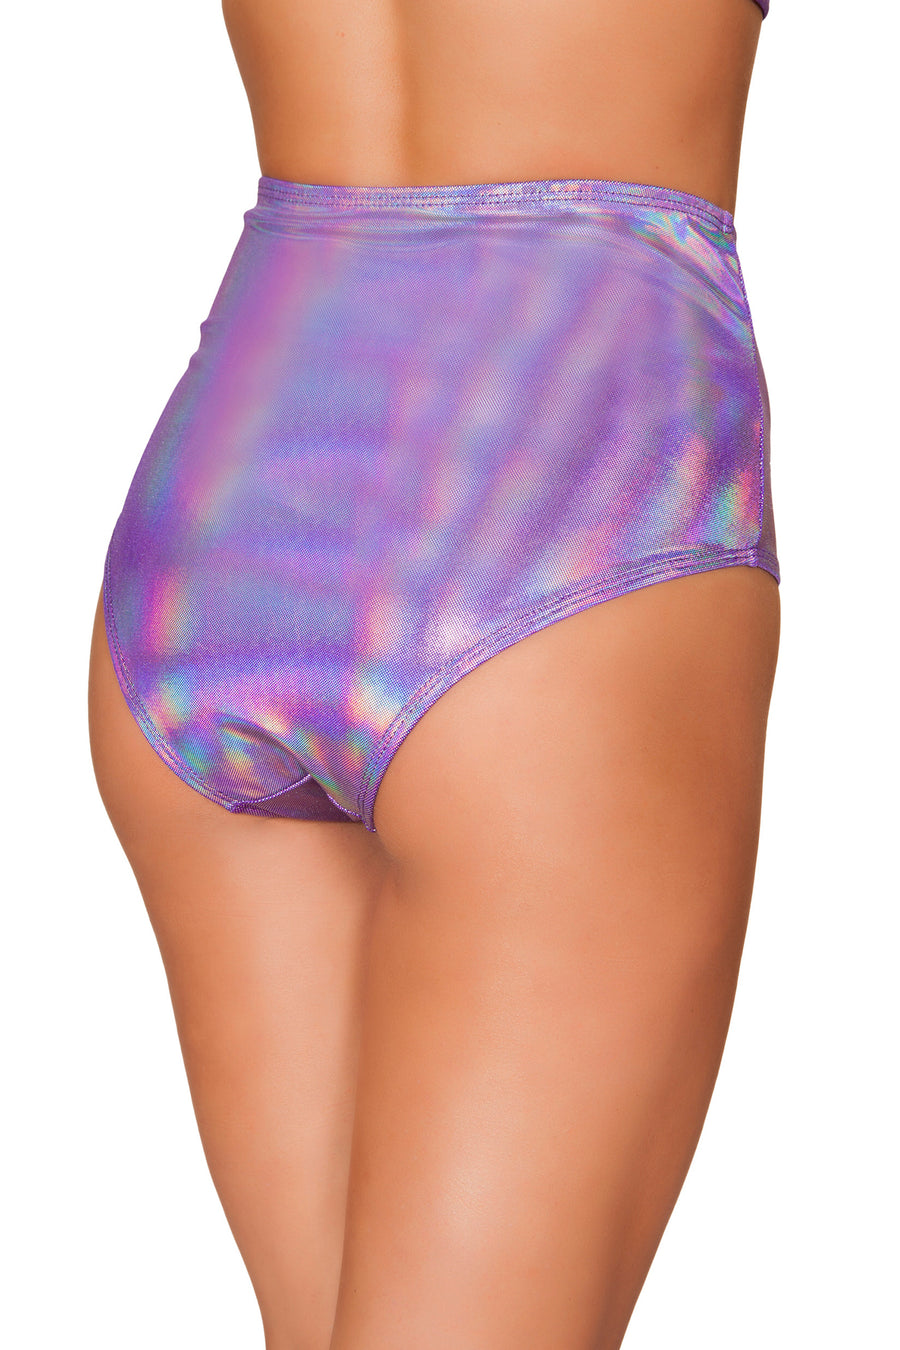 Purple Shimmer High Waisted Shorts - High Waisted Rave shorts, Roma - YourLamode